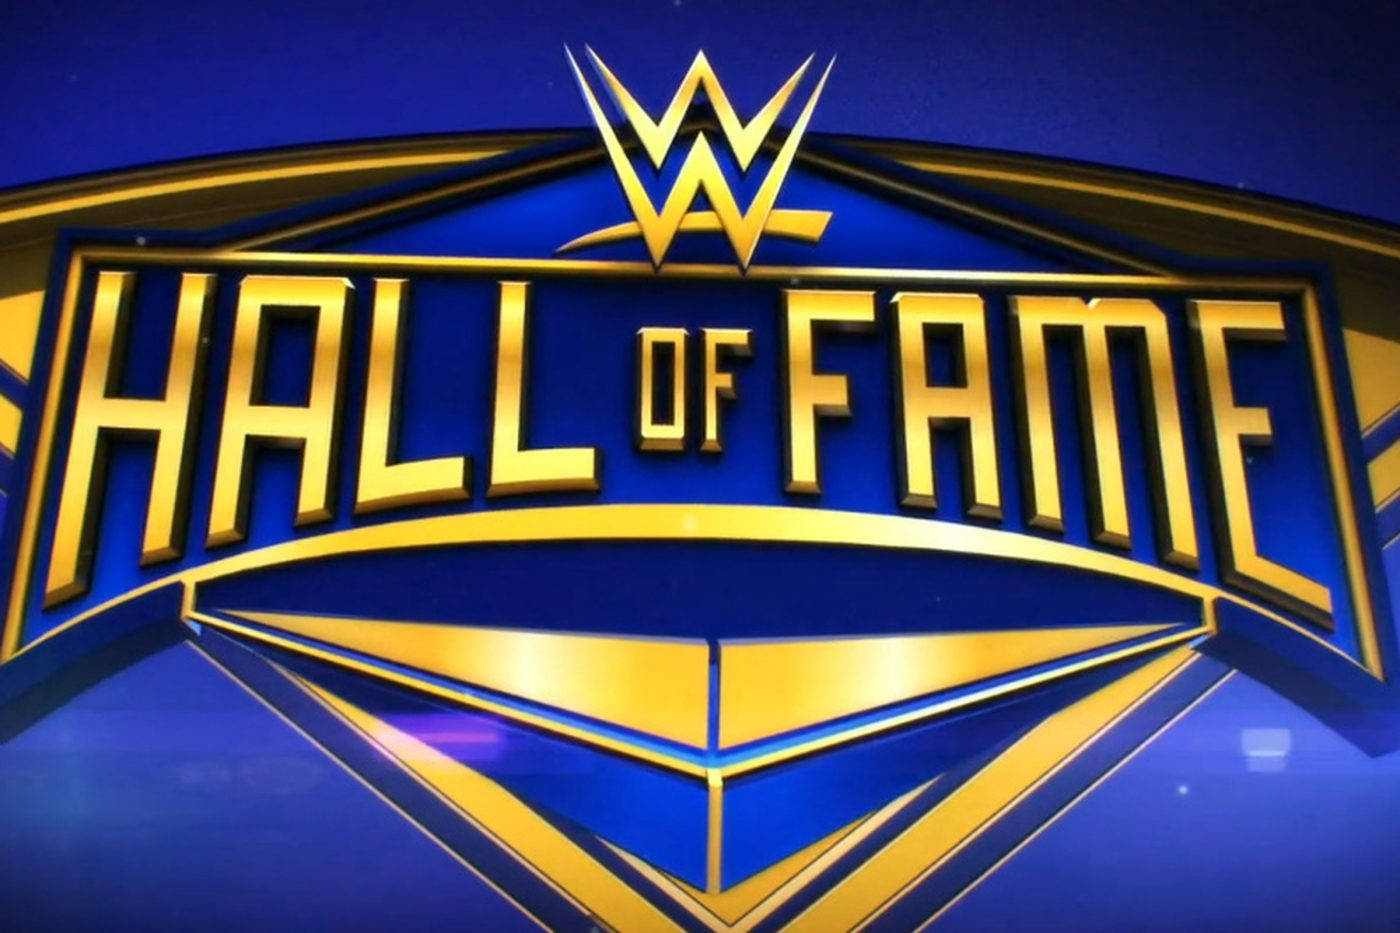 Who's in? A discussion about who should be, will be and could be in the WWE Hall of Fame